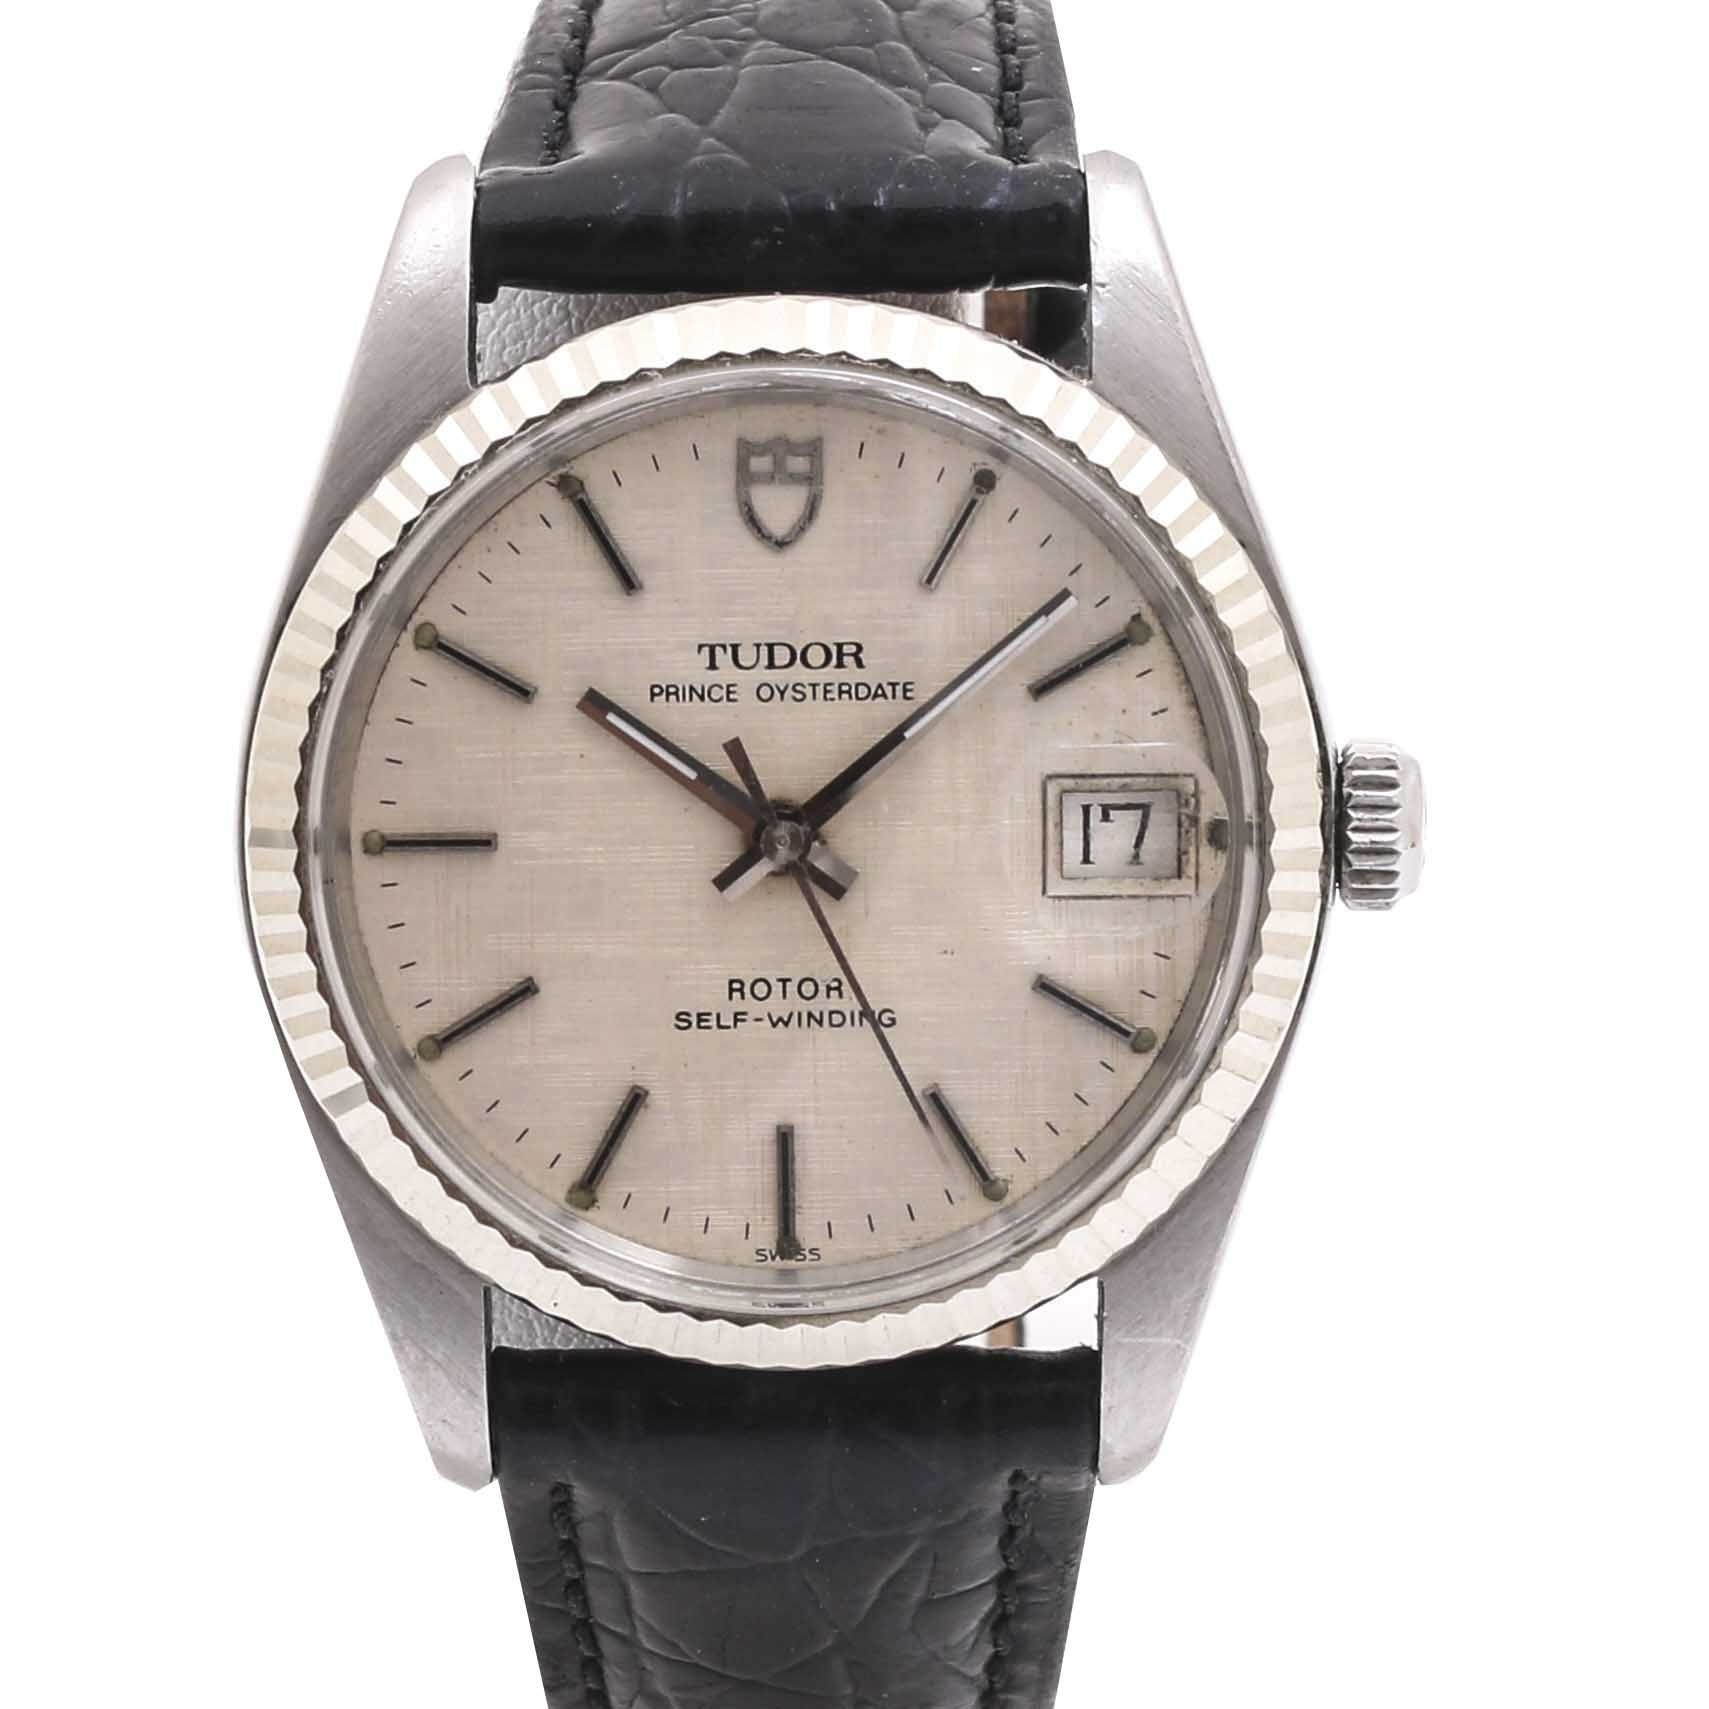 Tudor Prince Oysterdate Stainless Steel and Leather Wristwatch